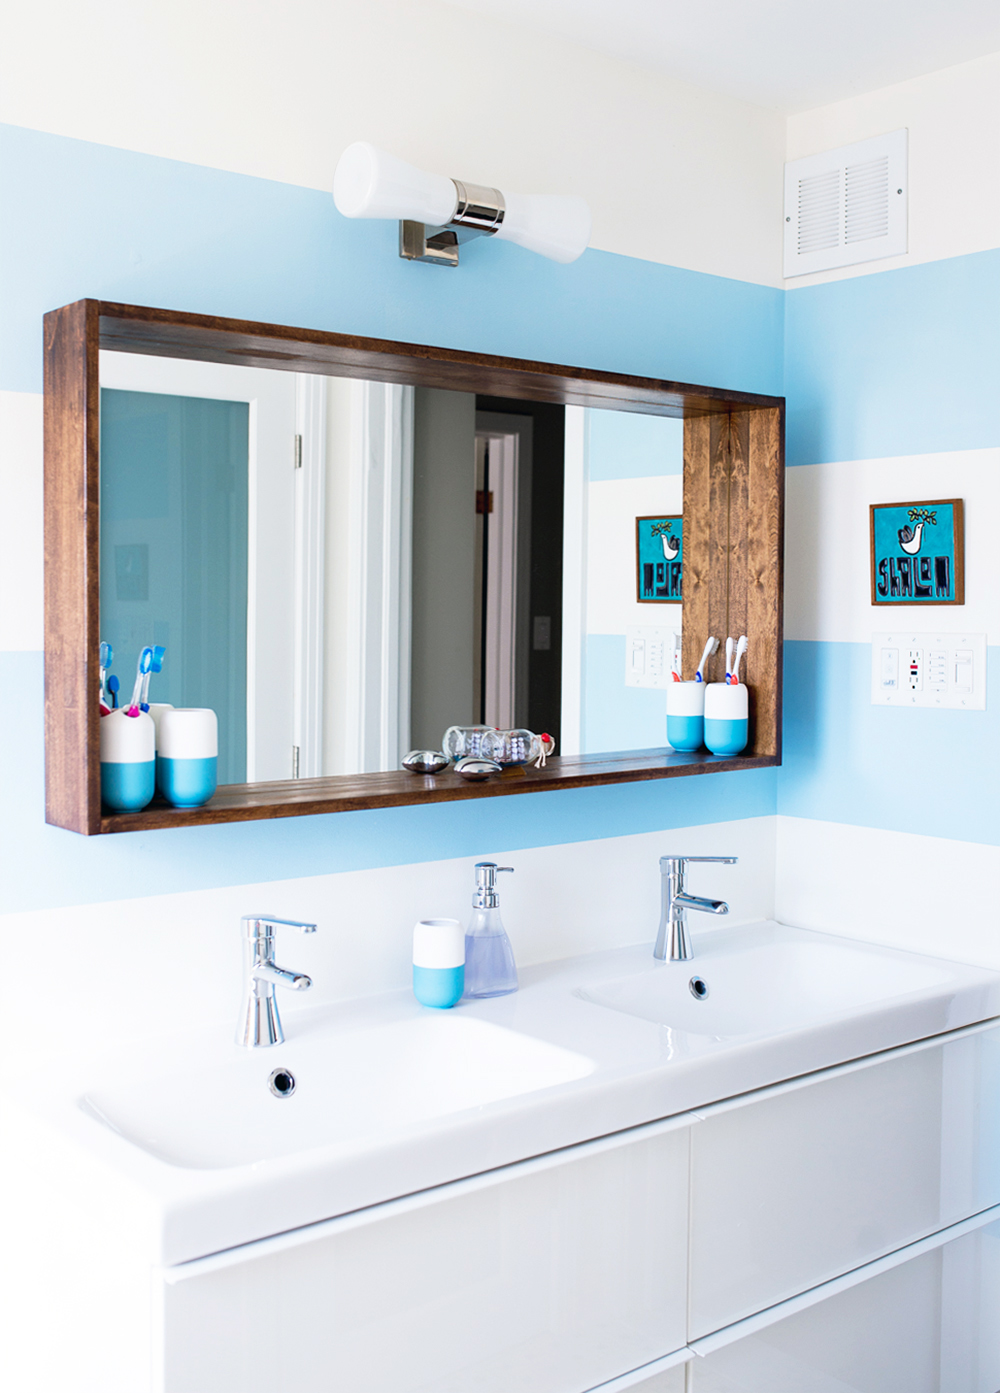 Before & After: A Big Sea of Bright, on Design*Sponge